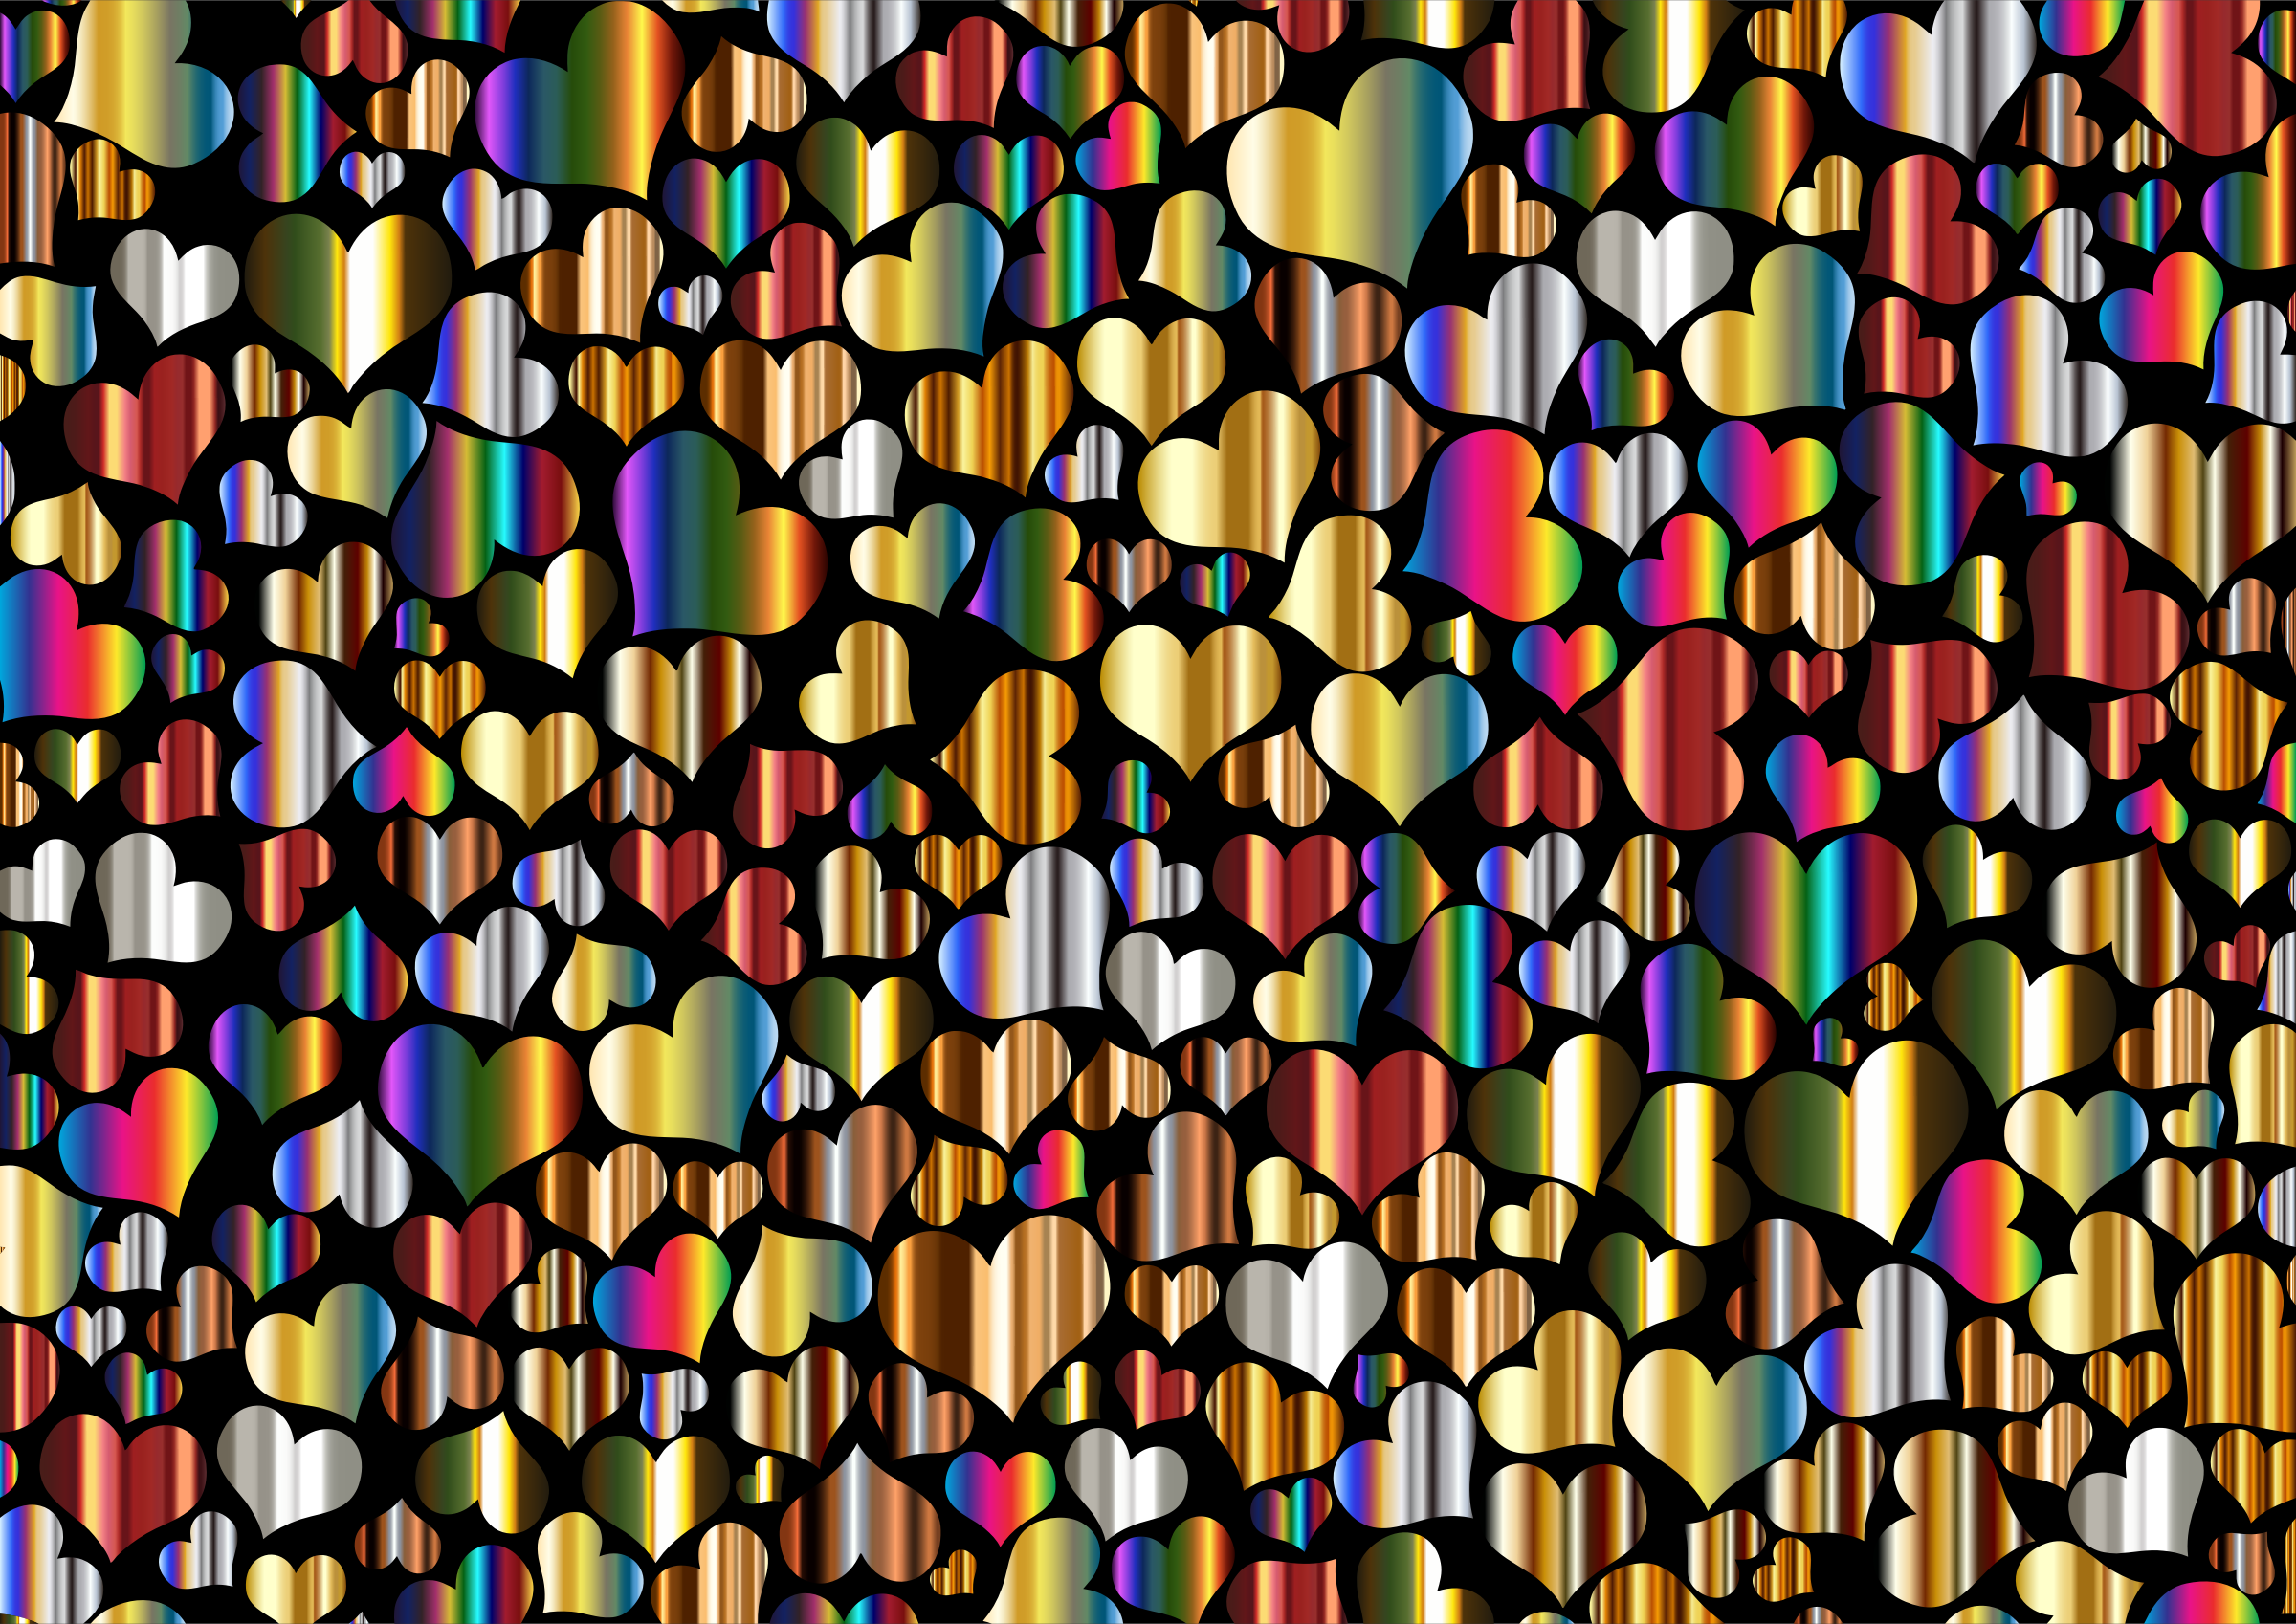 Shiny Metallic Hearts Background by GDJ